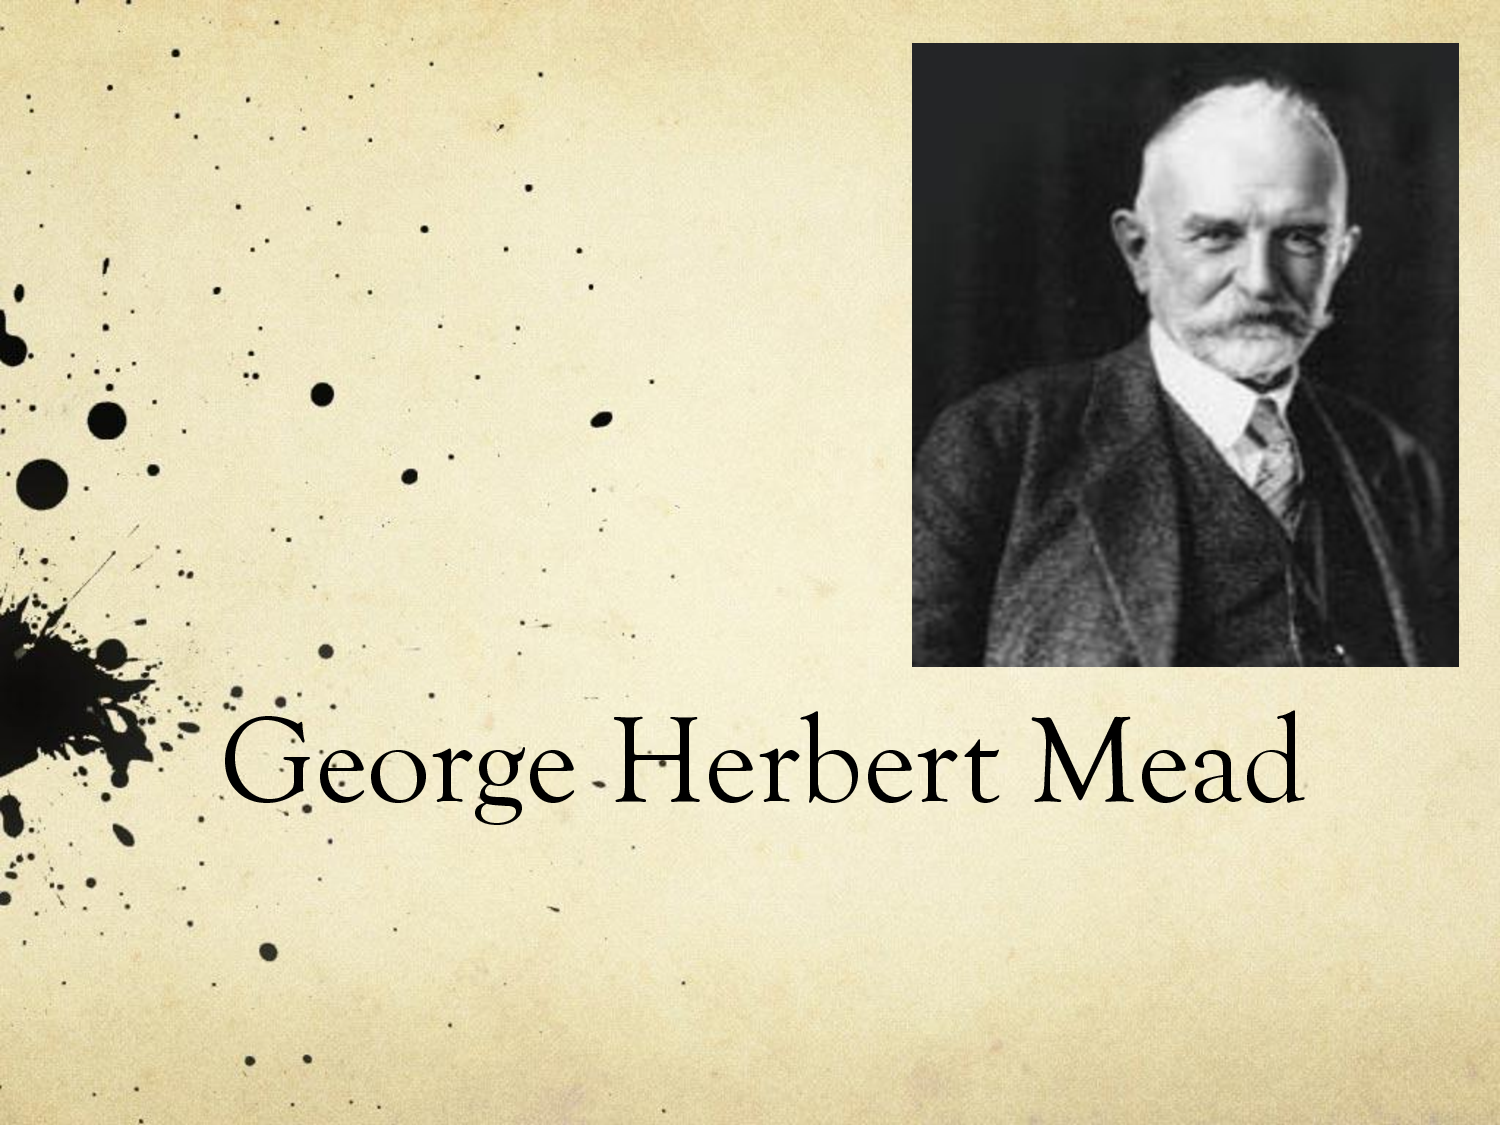 george herbert mead essay When a baby is first born, he doesn't seem to have a sense of who he is, but that changes as he grows in this lesson, we'll look at george herbert mead's research on how people develop a sense of self in the first few years of life.